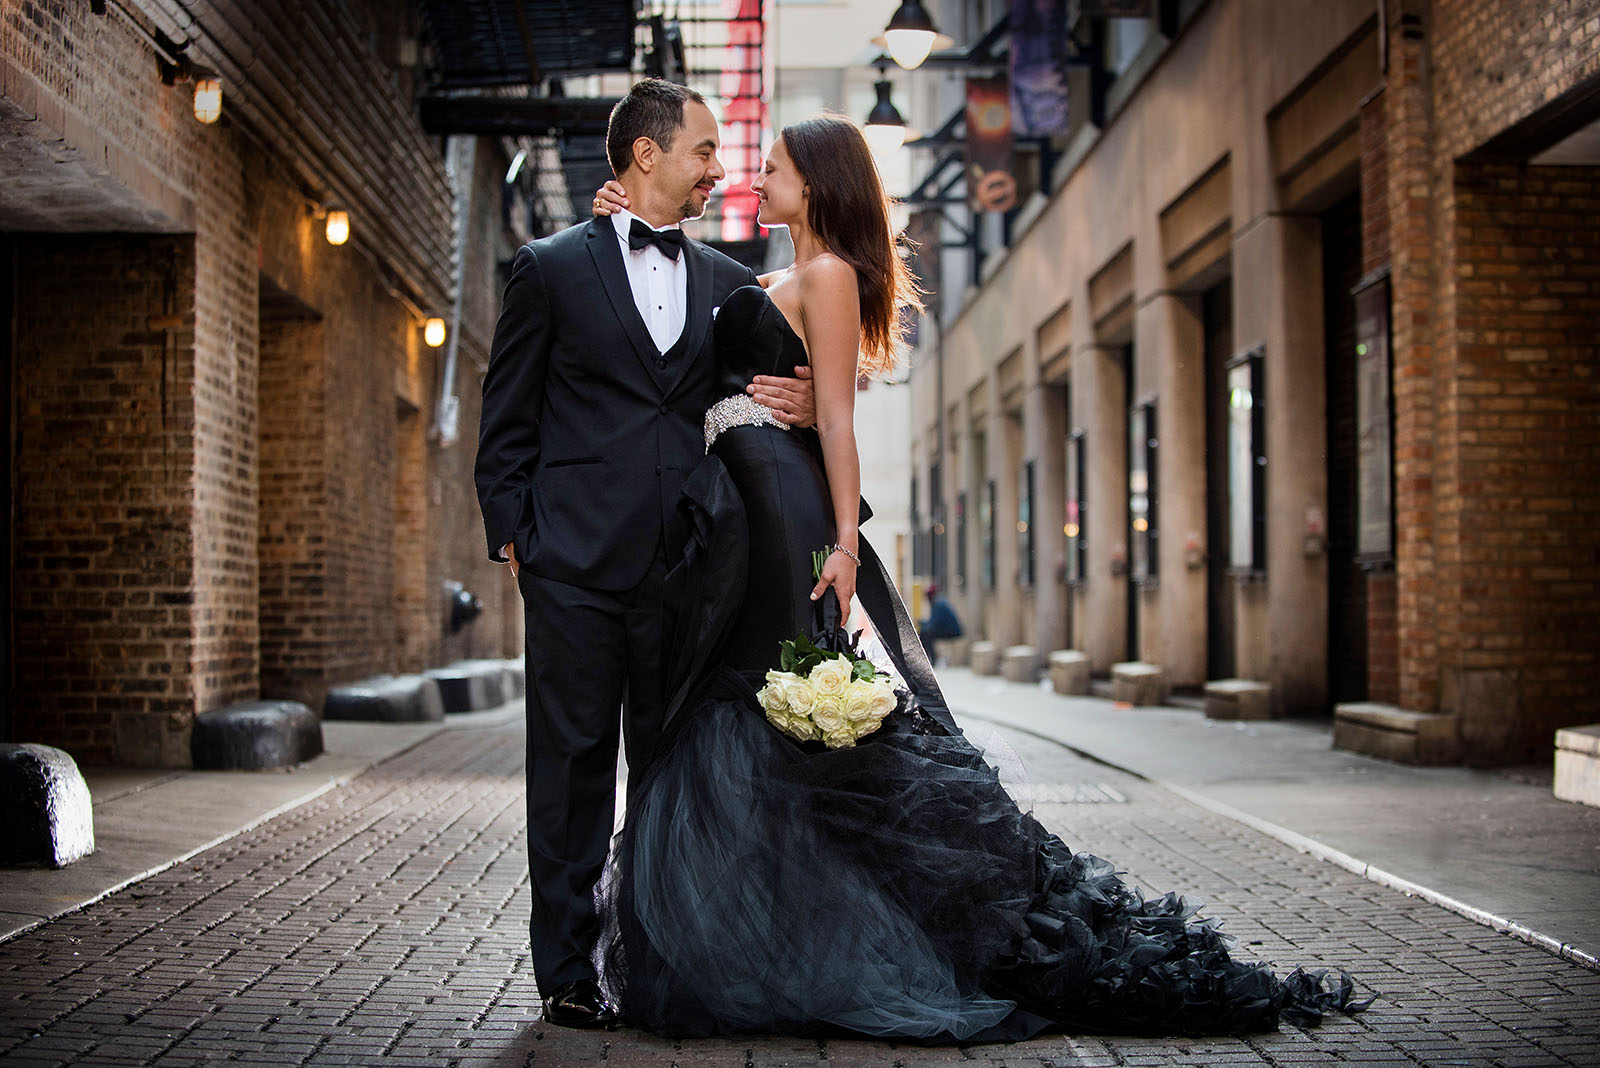 Bride Groom Wedding Photo Black Wedding Dress Chicago Theater